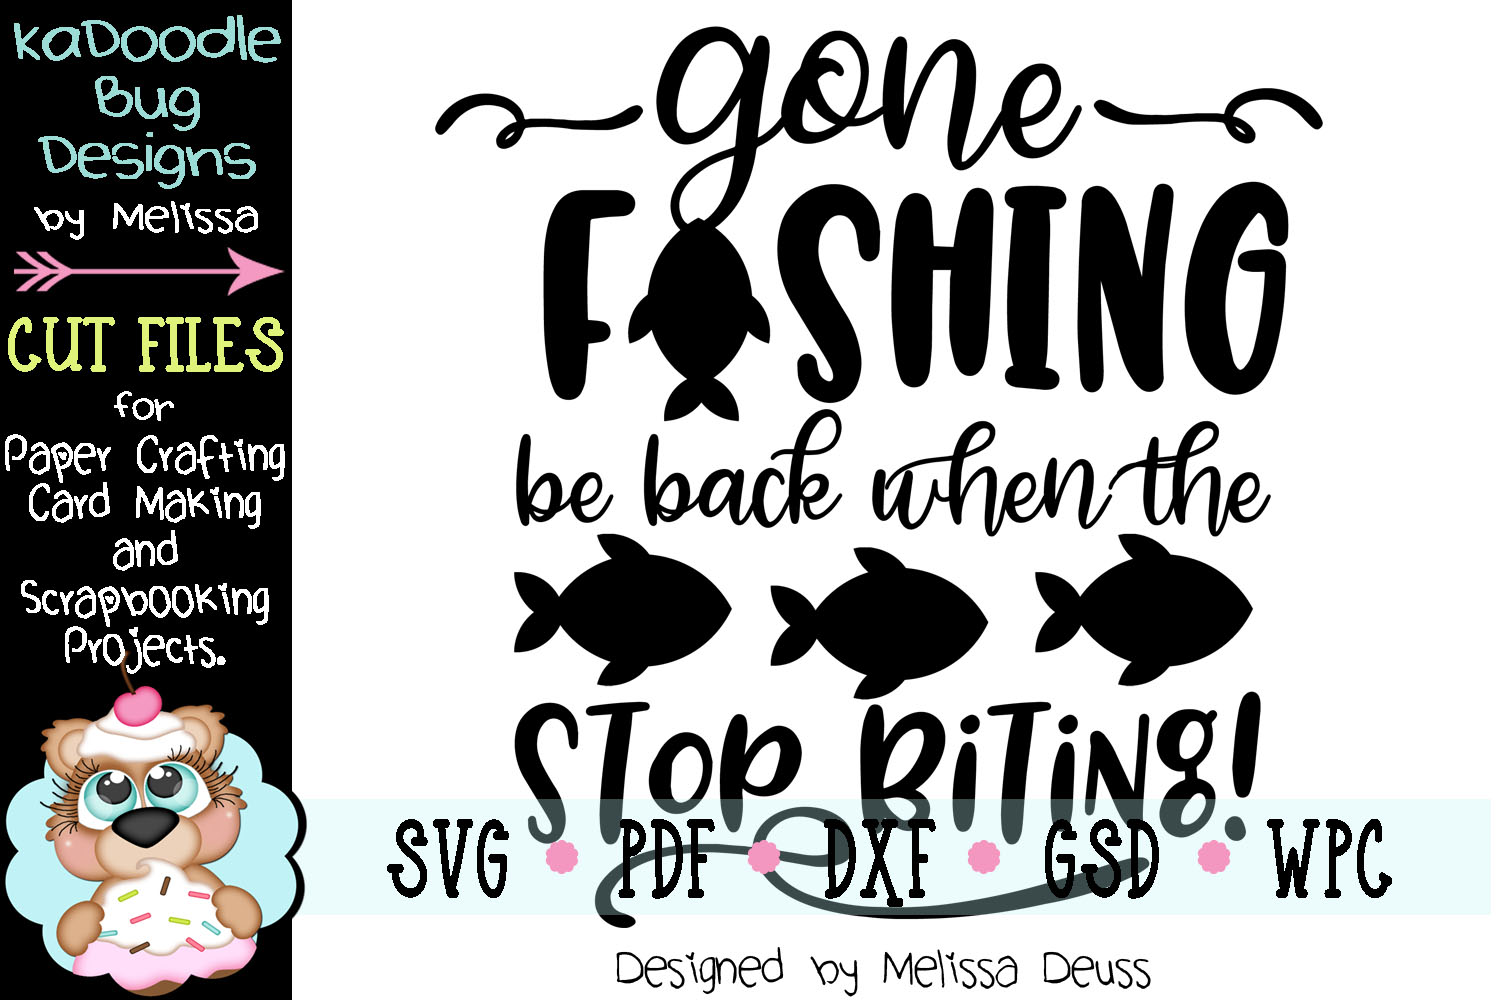 Gone Fishing Cut File - SVG PDF DXF GSD WPC example image 2